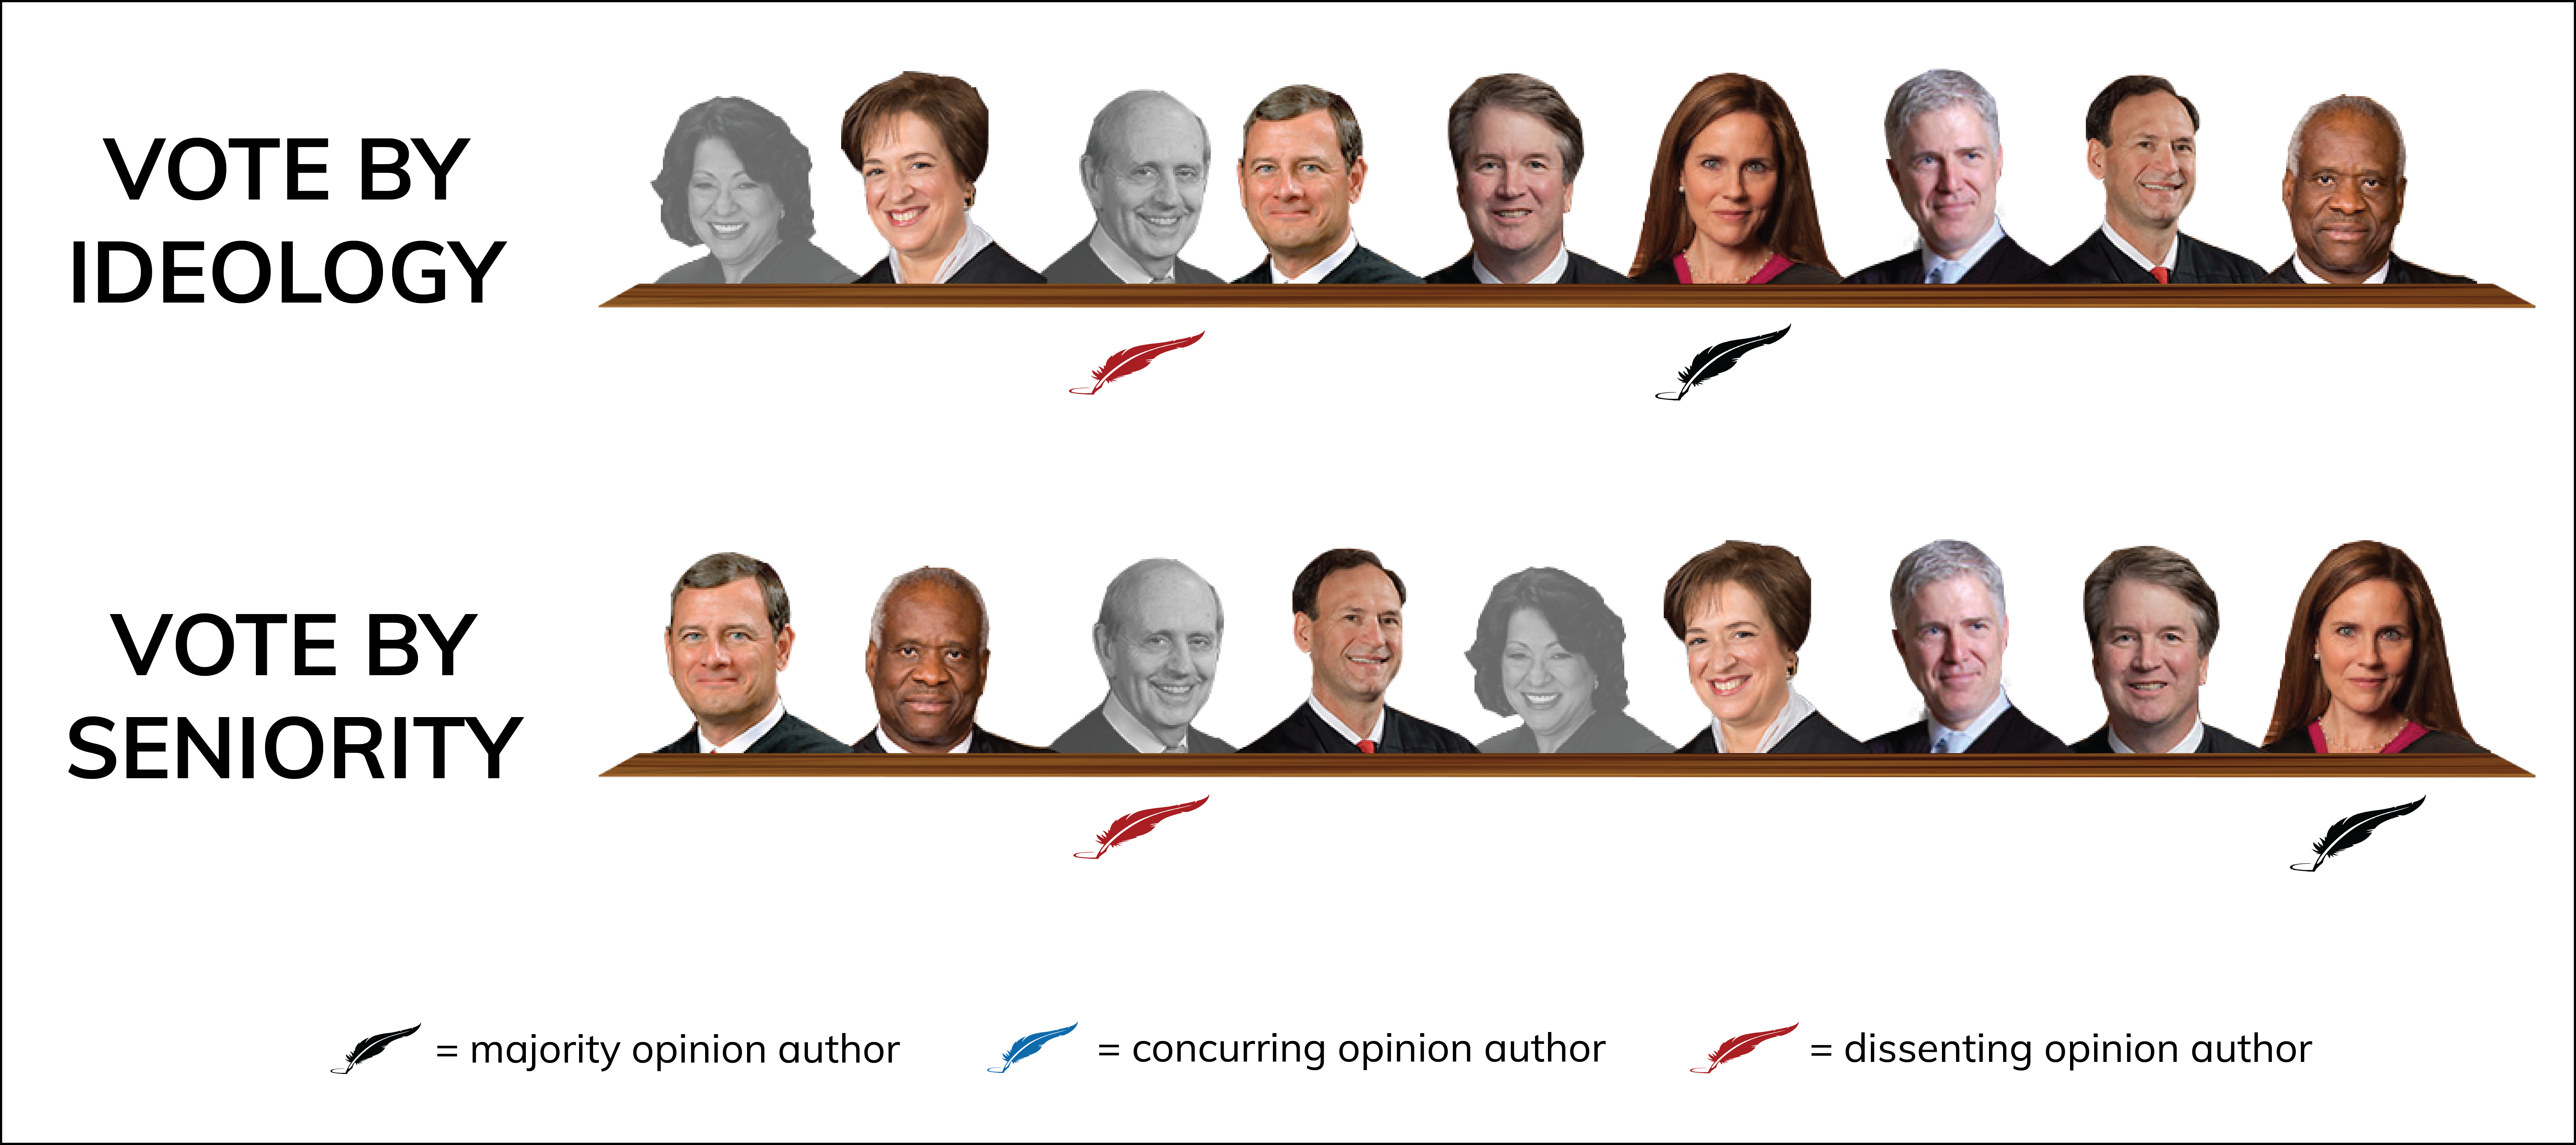 The graph shows the agreement of 7 votes to 2 votes (Roberts, Thomas, Alito, Kagan, Gorch, Cavano Barrett have the majority; Breyer and Sotomayor disagree)